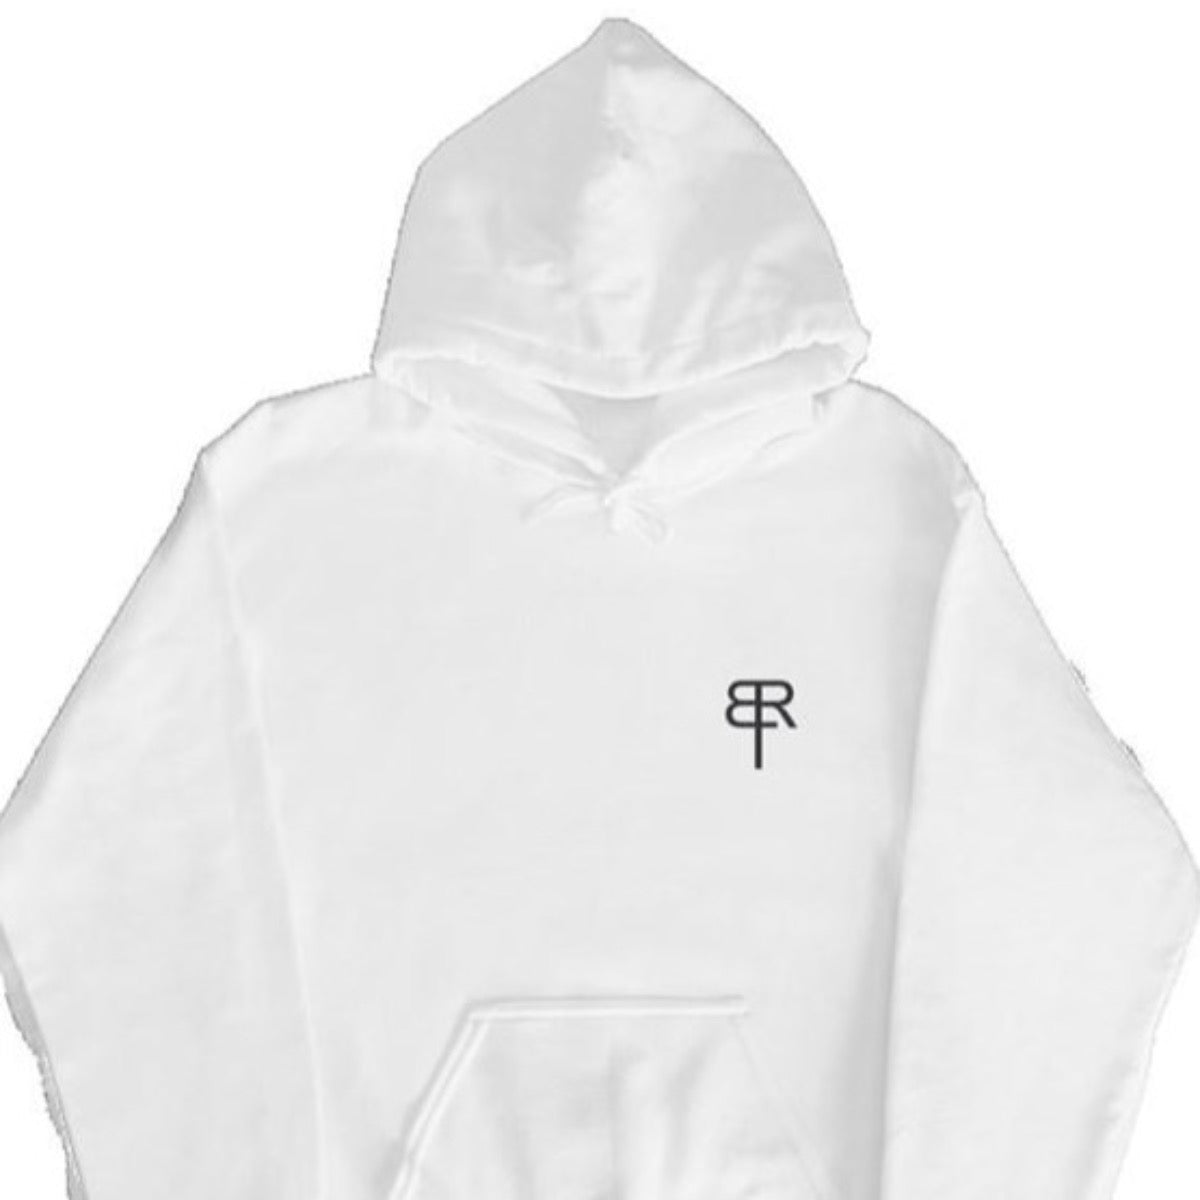 BTR Embroidered hoodie